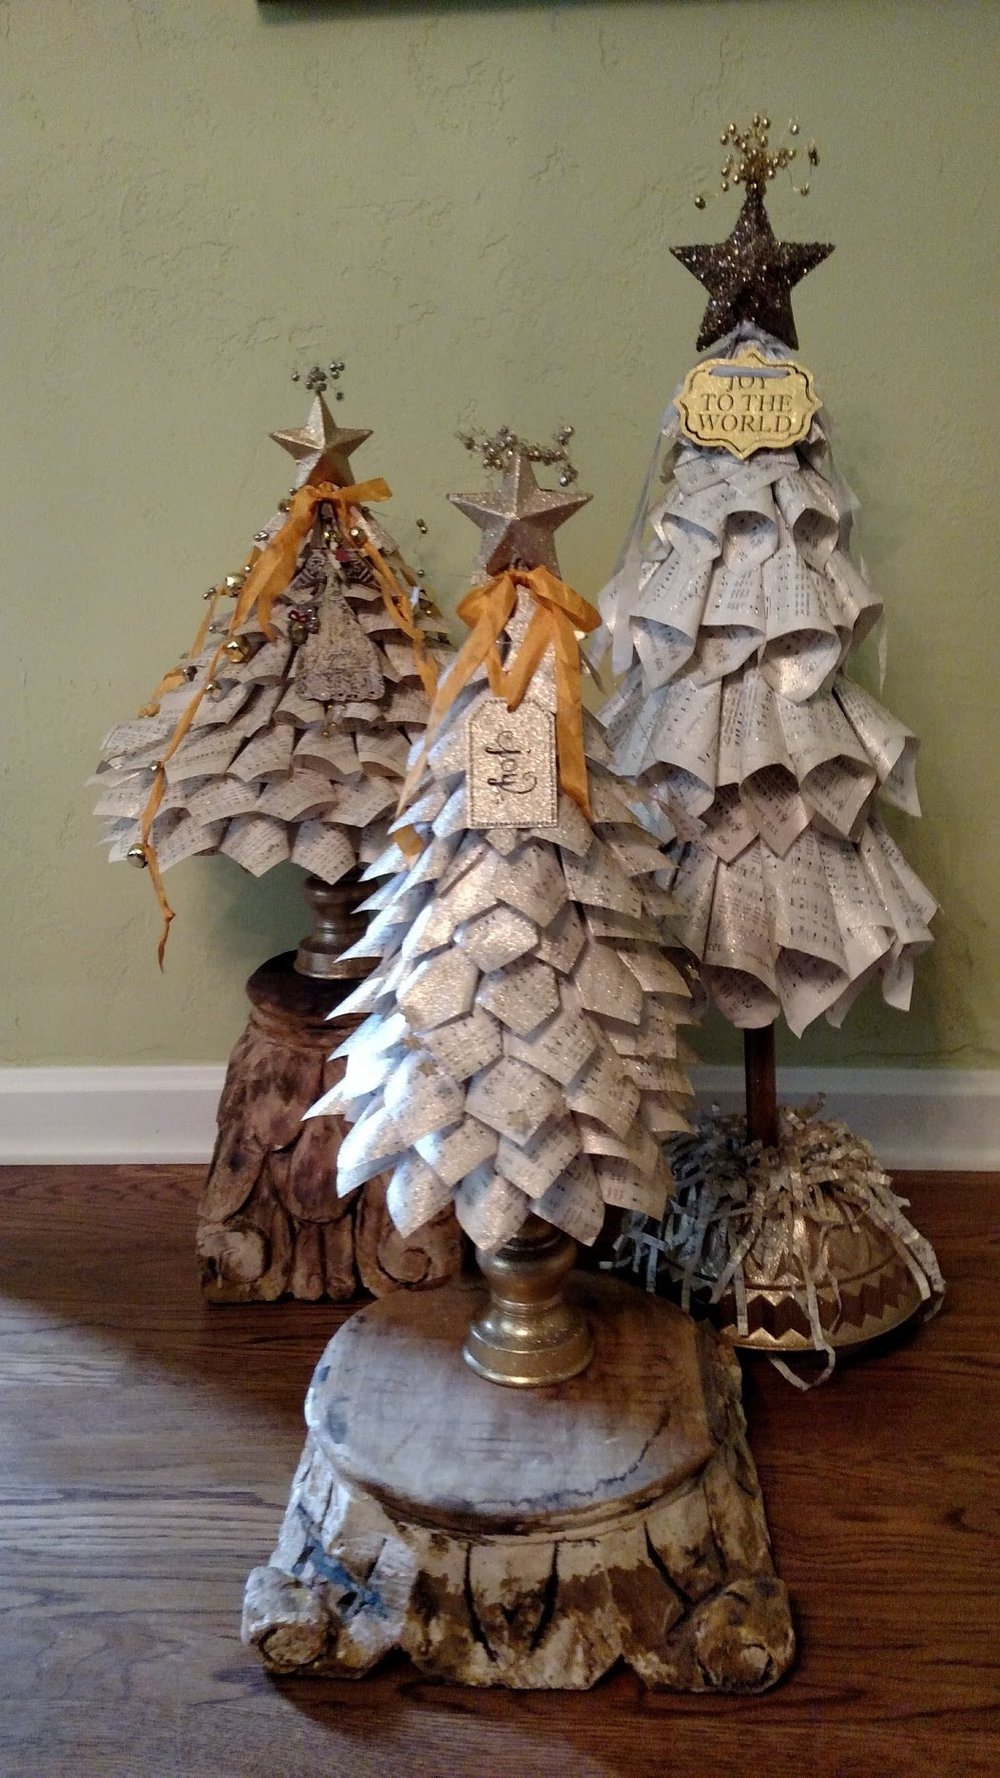 Three Cone Christmas Trees.jpg